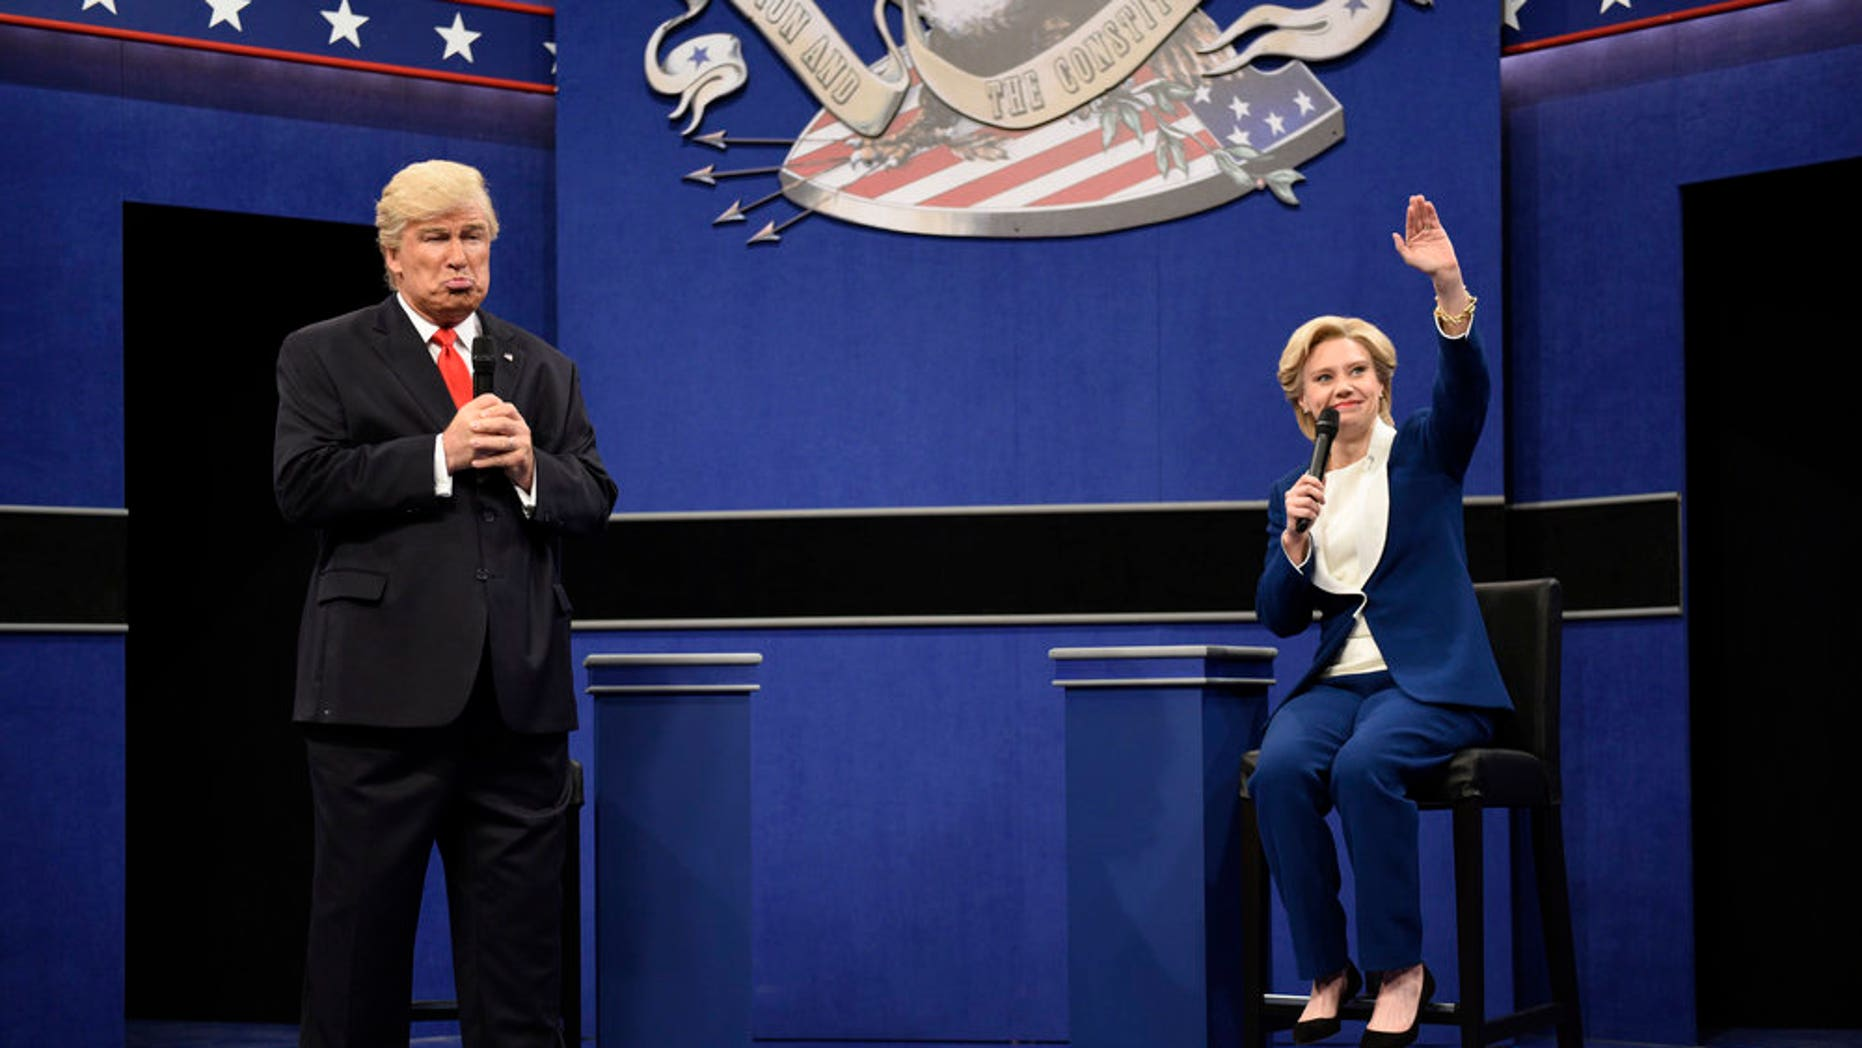 """SATURDAY NIGHT LIVE -- """"Emily Blunt"""" Episode 1707 -- Pictured: (l-r) Alec Baldwin as Republican Presidential Candidate Donald Trump and Kate McKinnon as Democratic Presidential Candidate Hillary Clinton during the """"Debate Cold Open"""" sketch on October 15, 2016 -- (Photo by: Will Heath/NBC)"""